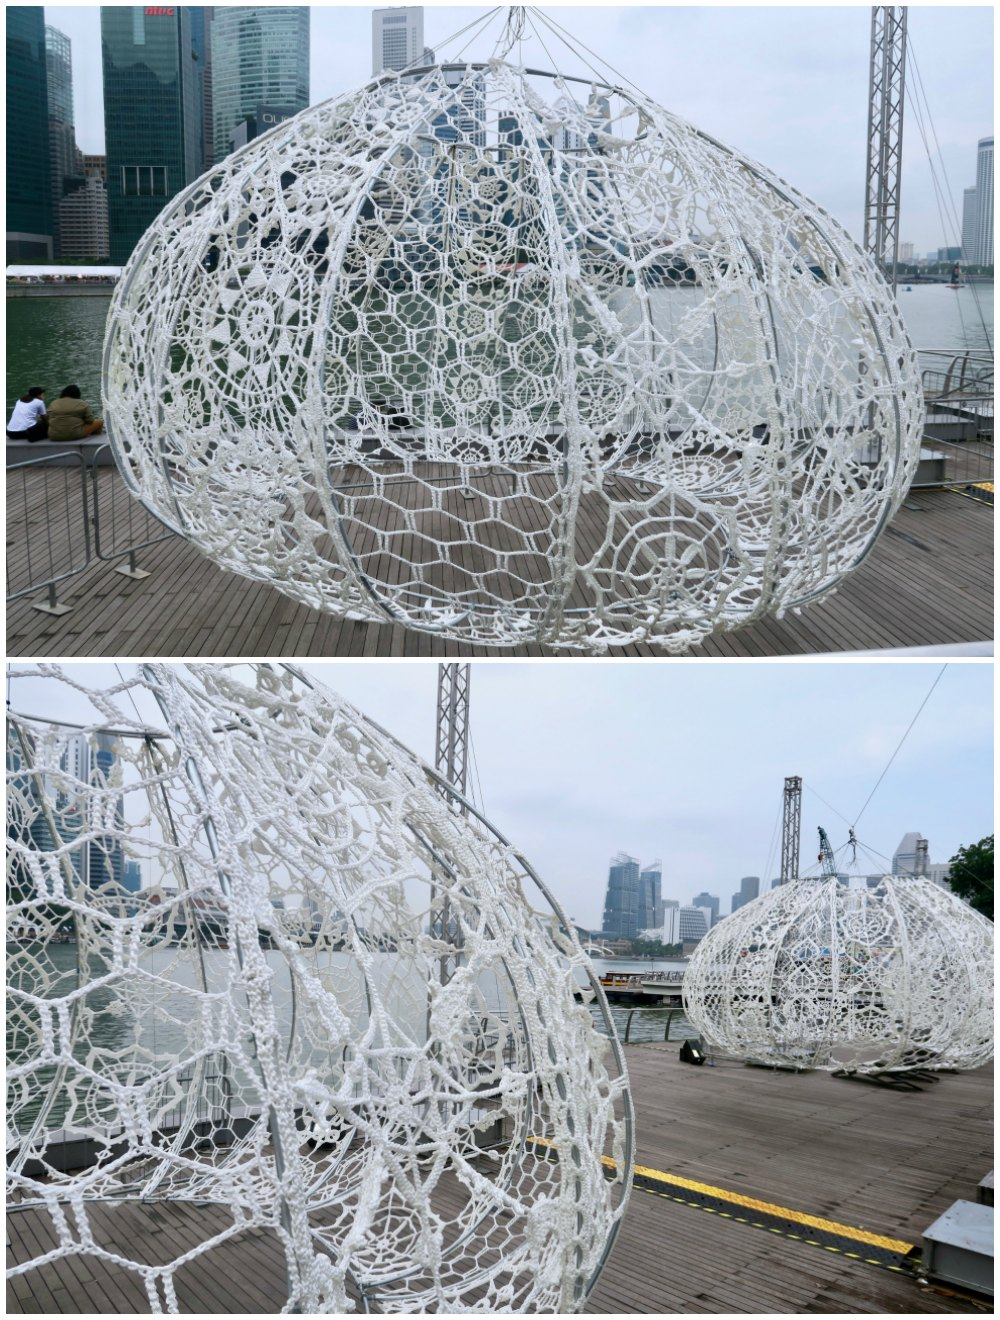 Crochet urchins at light marina bay singapore |curlytraveller.com